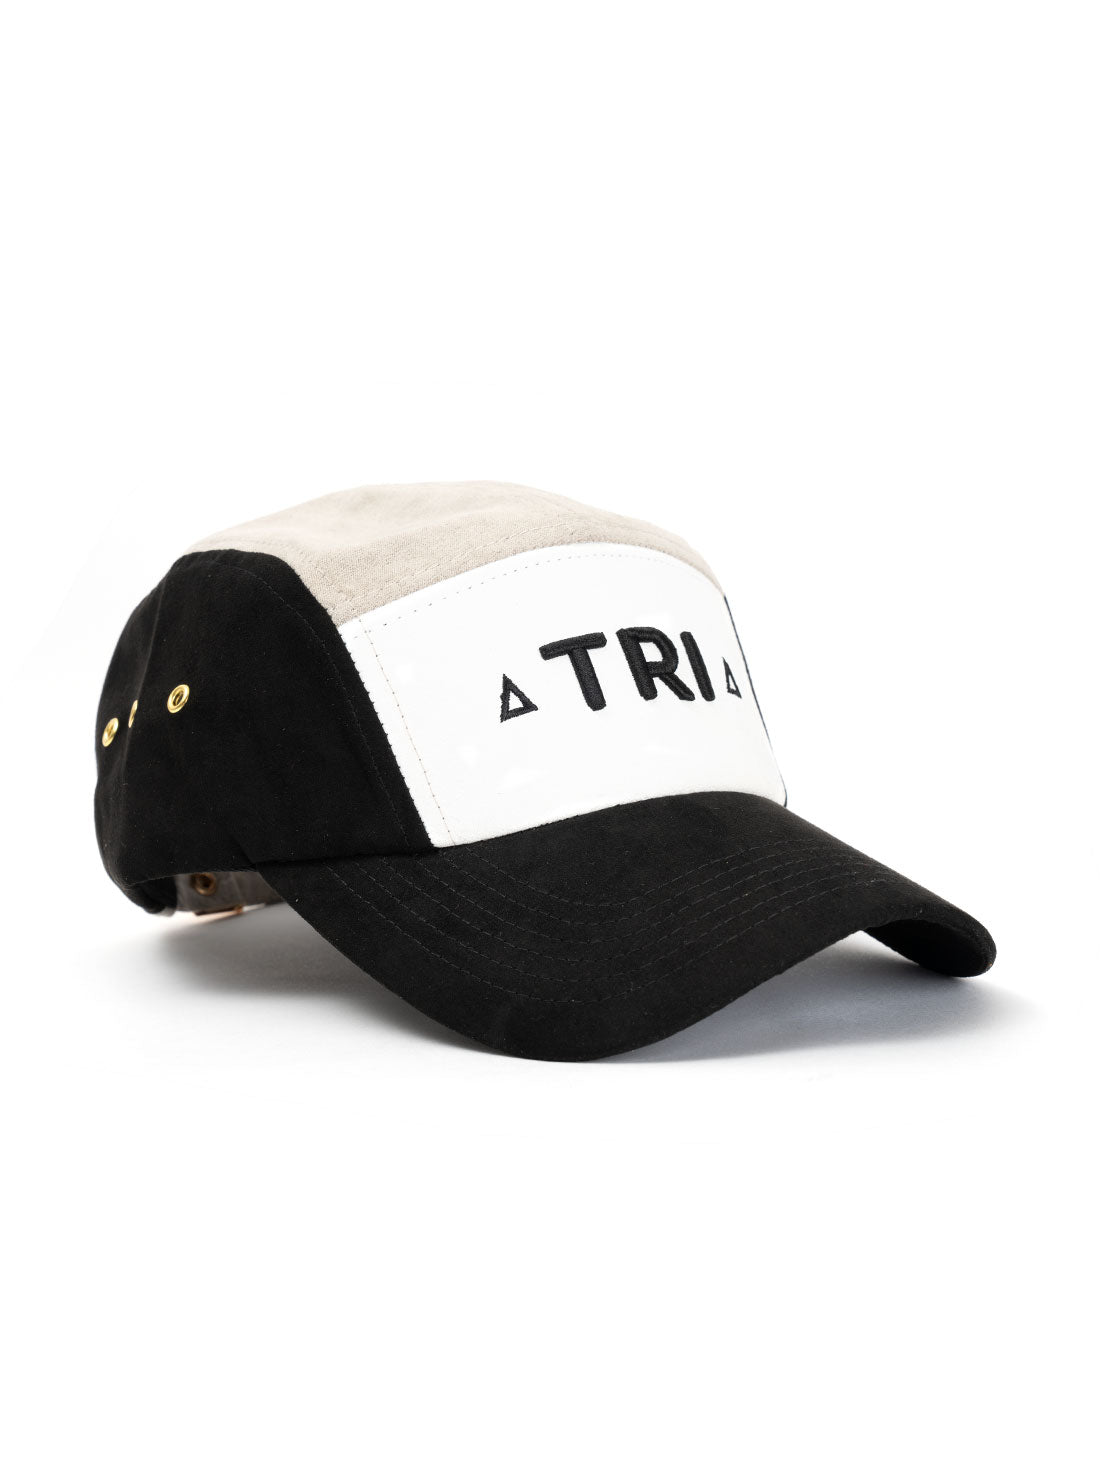 TRI 5 Panel BLK/GREY - Triangulo Swag